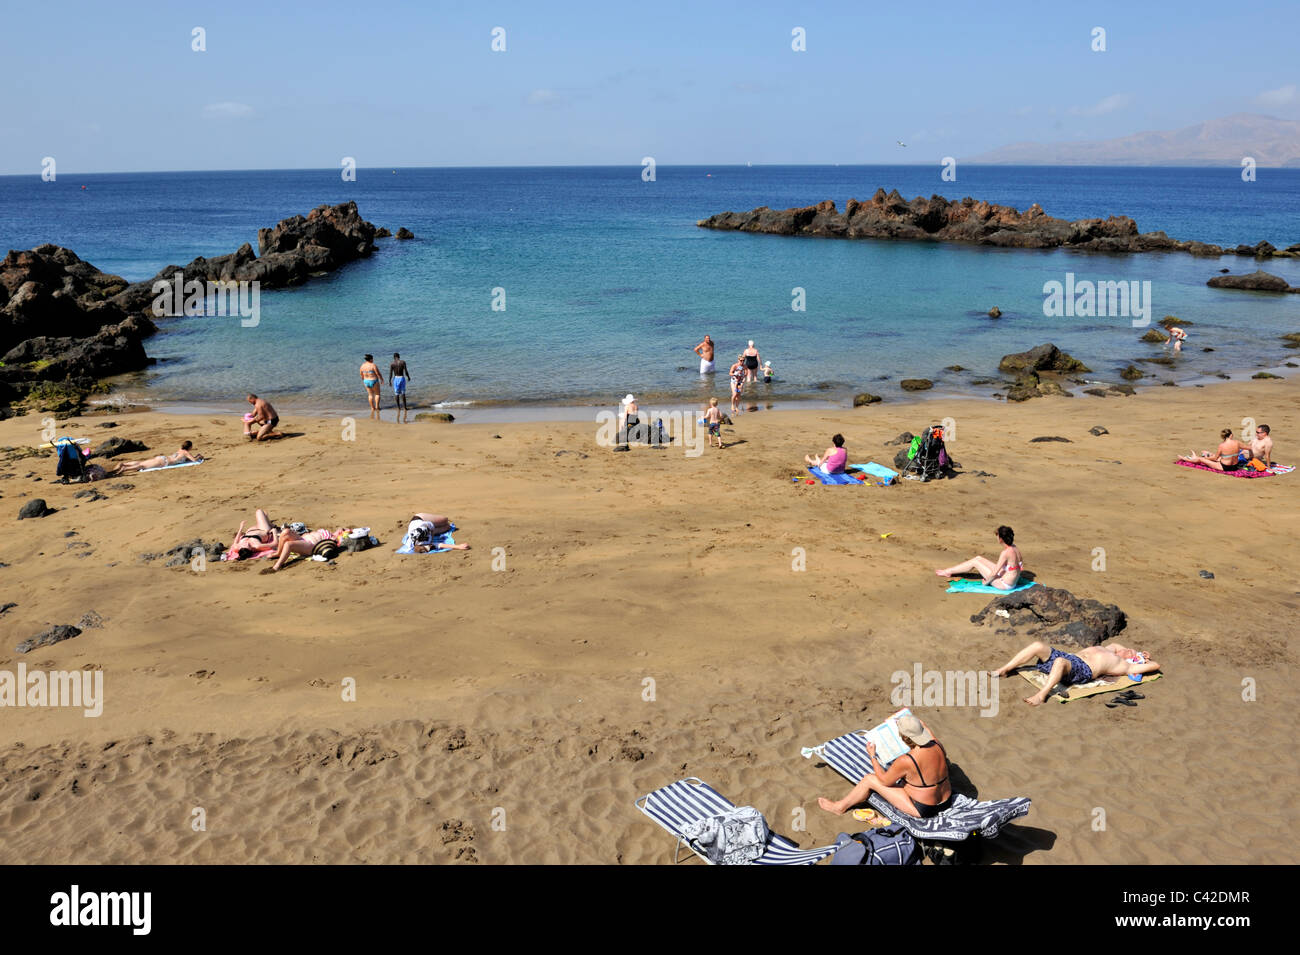 Beach And Cove Of Playa Chica Old Town Puerto Del Carmen Stock Photo Alamy